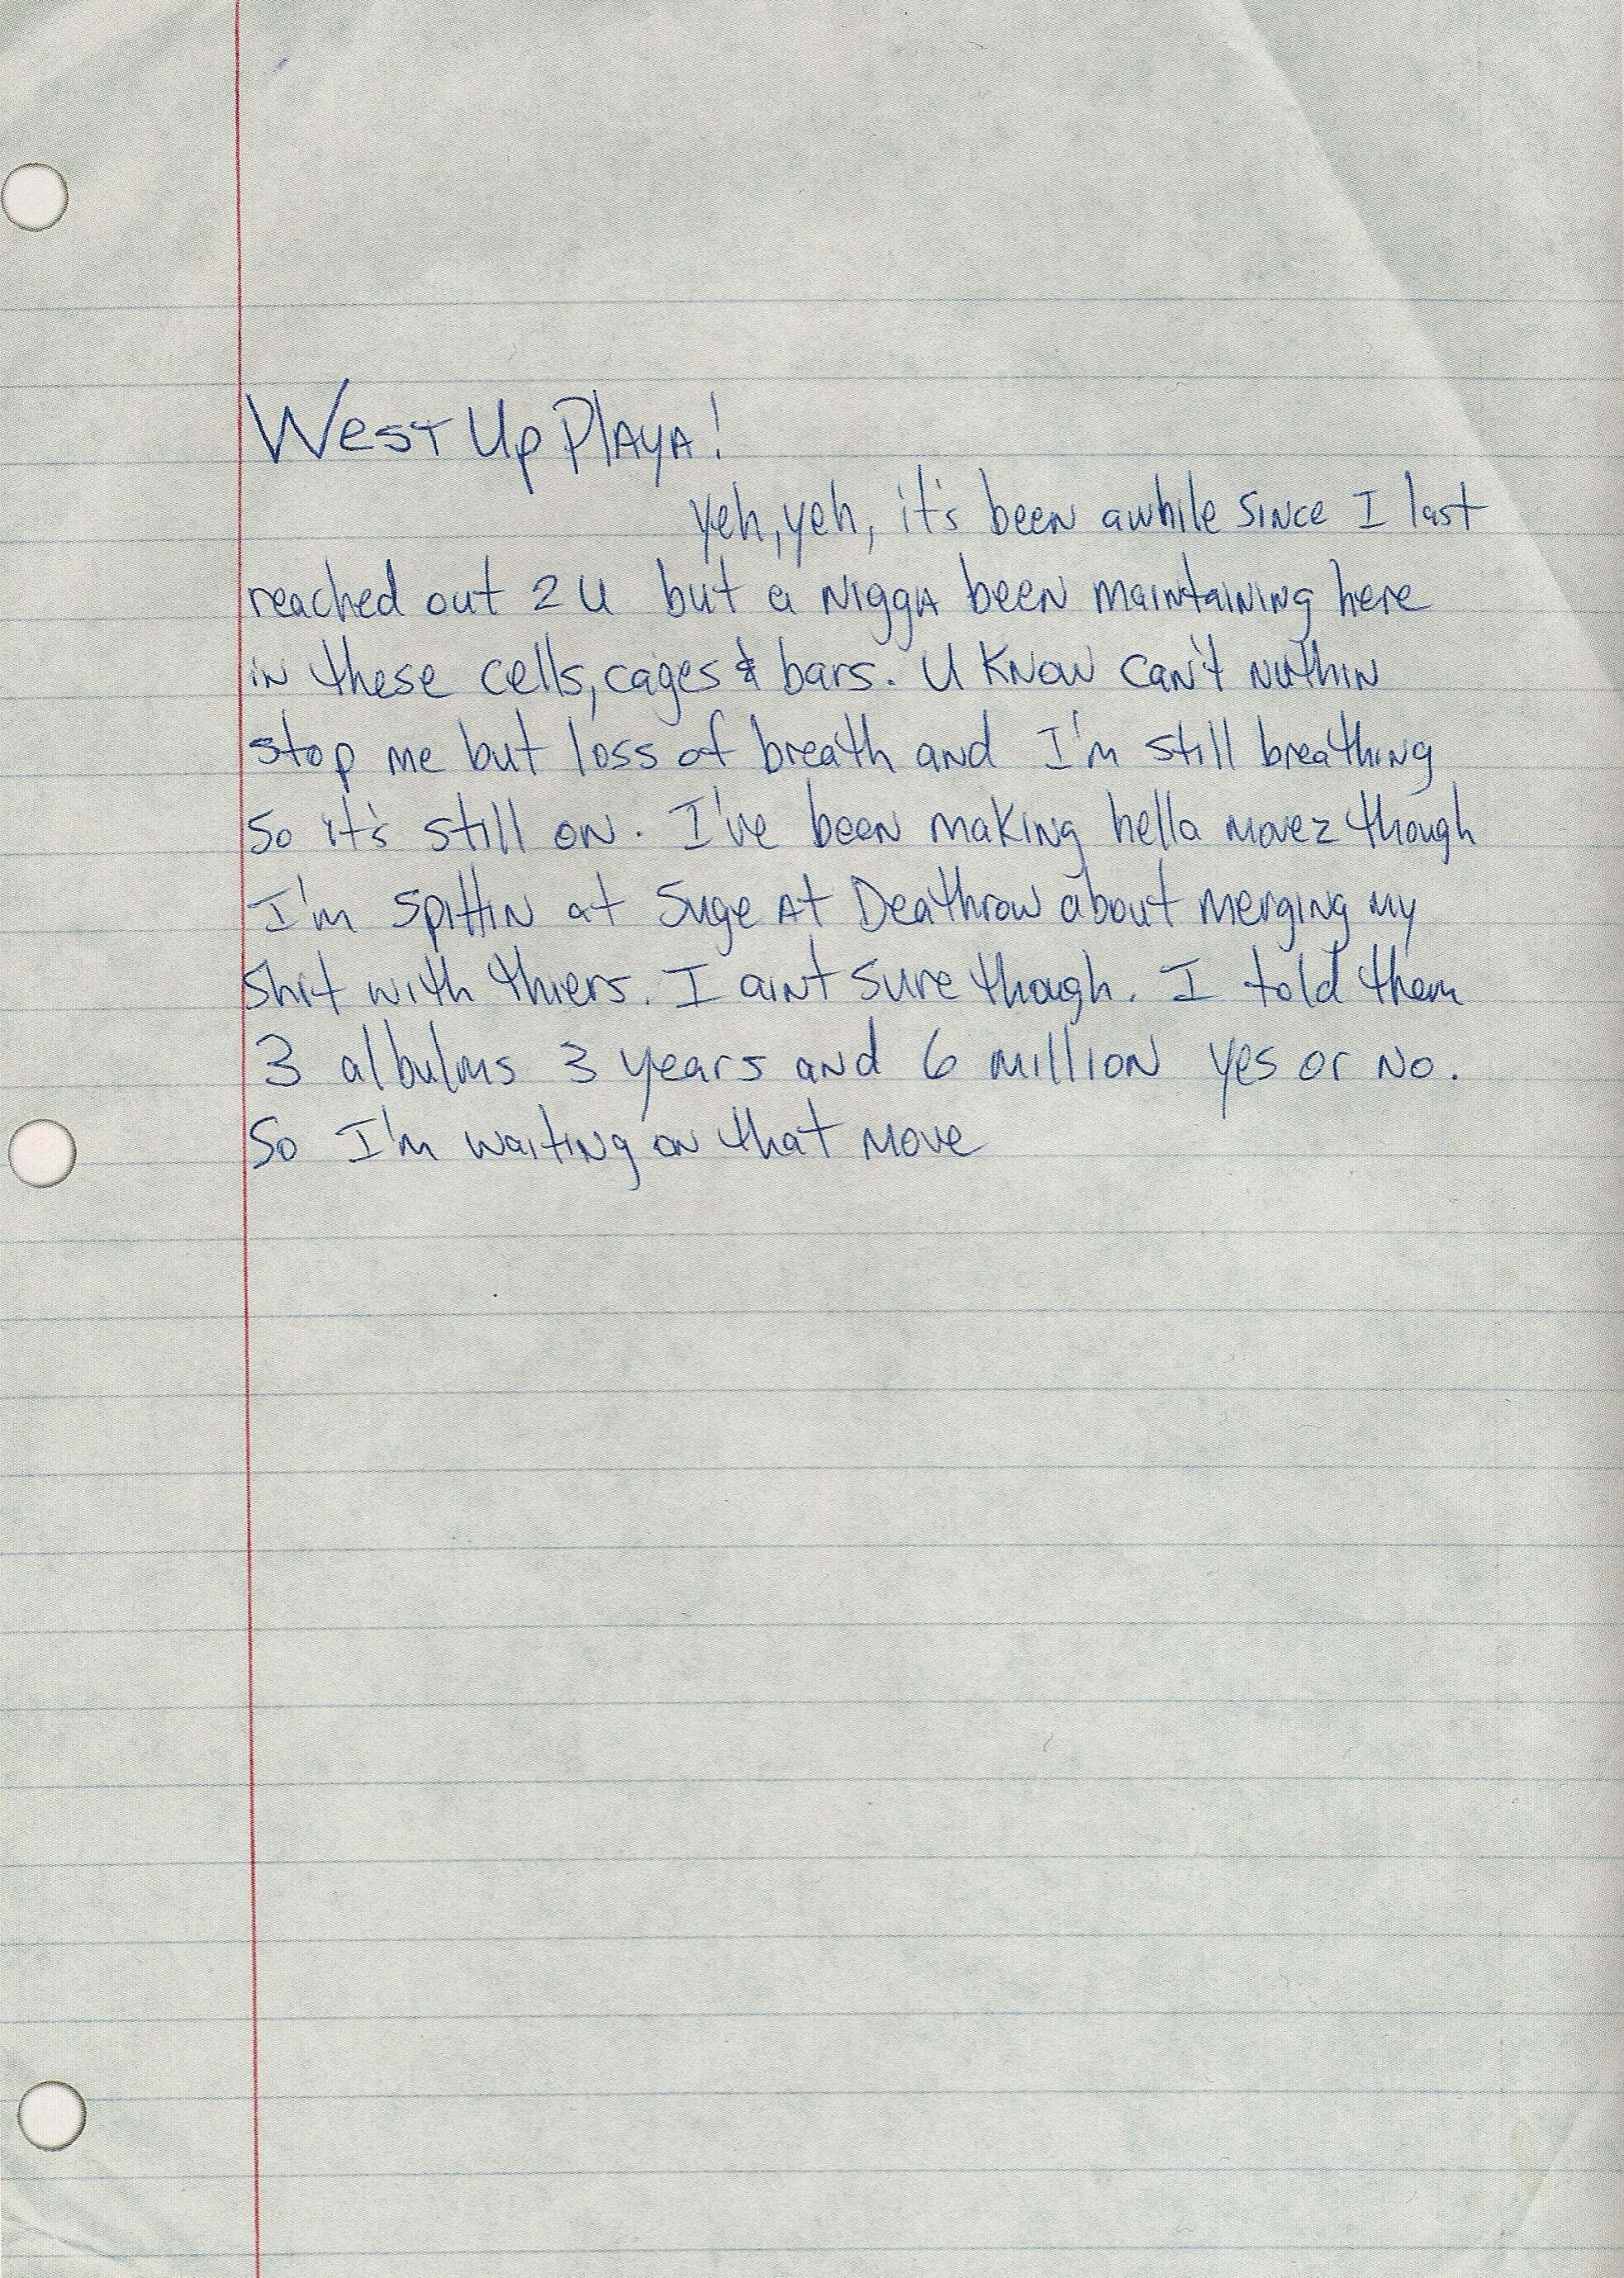 Untitled Letter - West Up Playa Tupac's Handwritten Letter